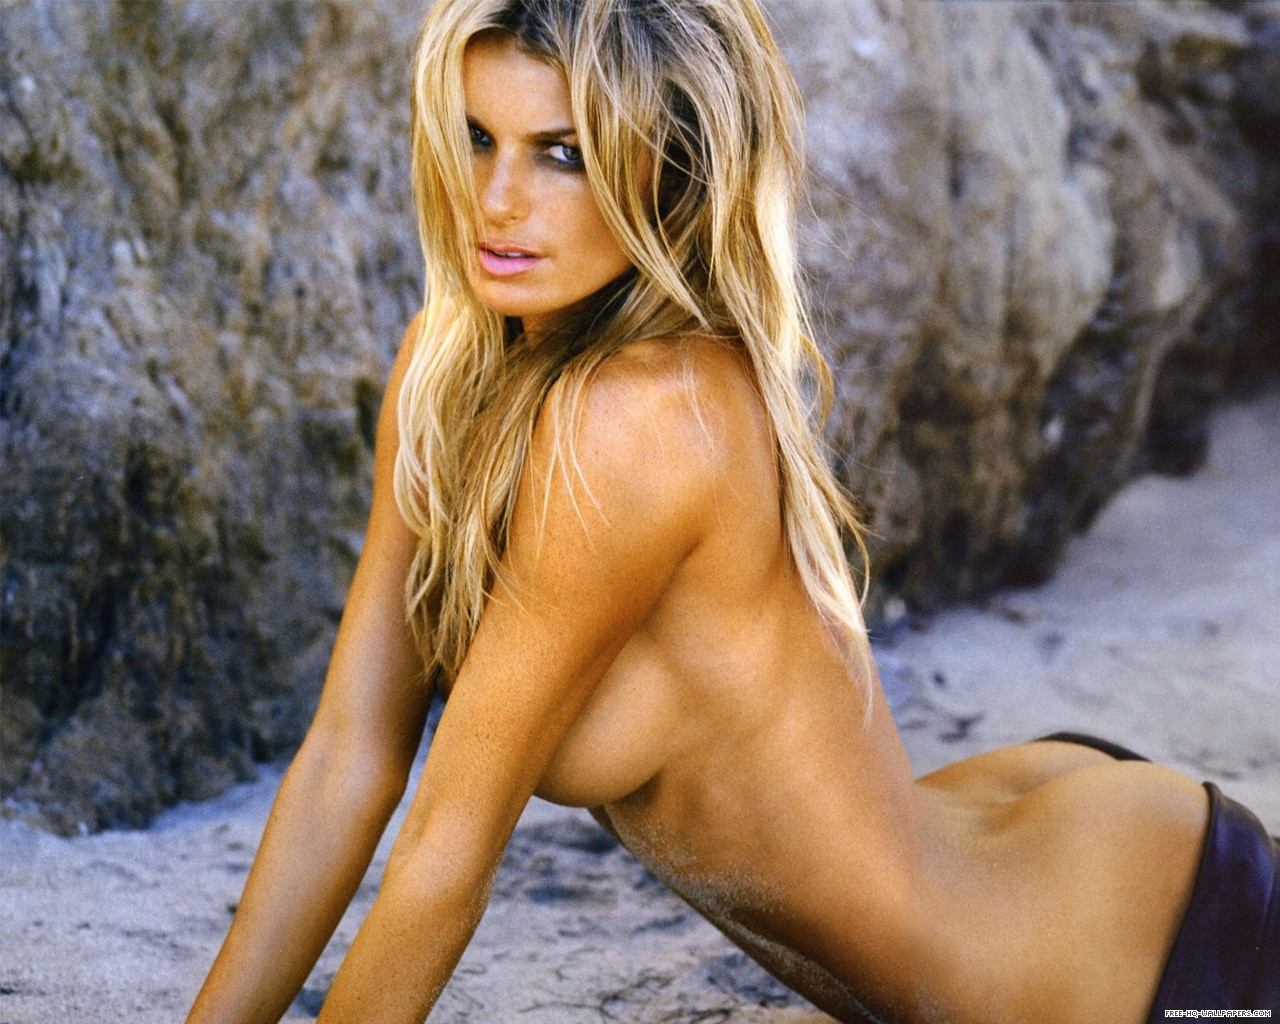 Marisa Miller Select From Gallery Images Below